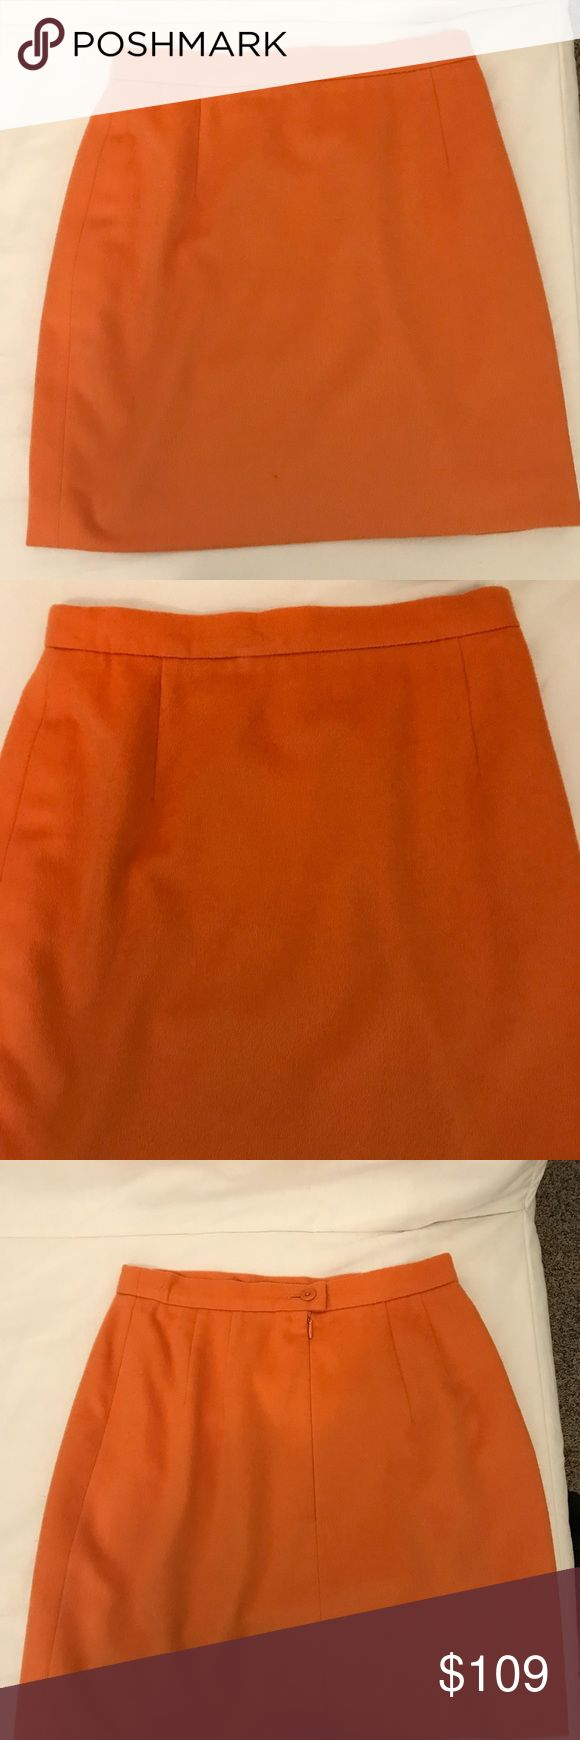 Escada orange pencil skirt This bright sunny skirt is wool/angora with silk lining. There is a small spot on the bottom right and a button (1 of 2) is missing in the back. The price reflects this. Escada Skirts Pencil